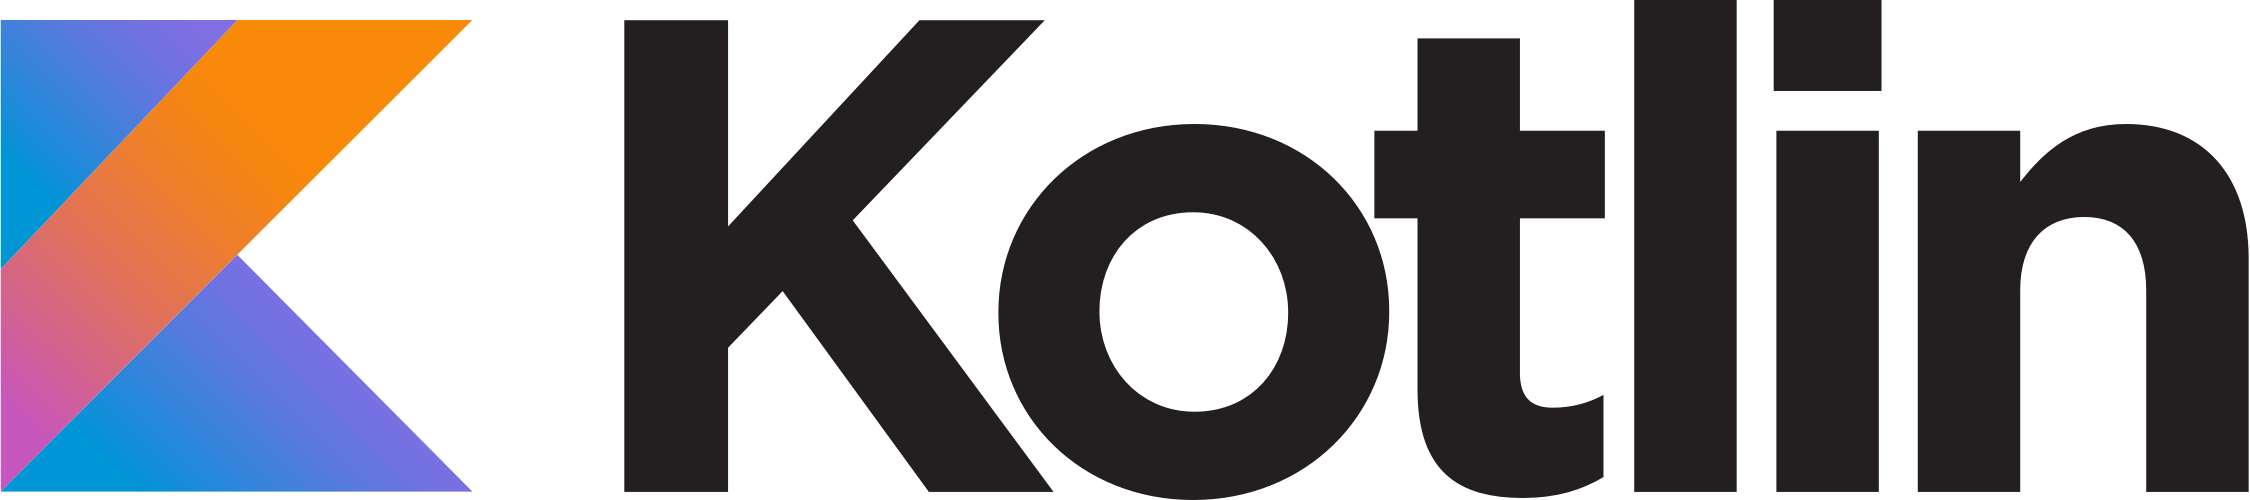 tvxfZWX2S-logo-text.png